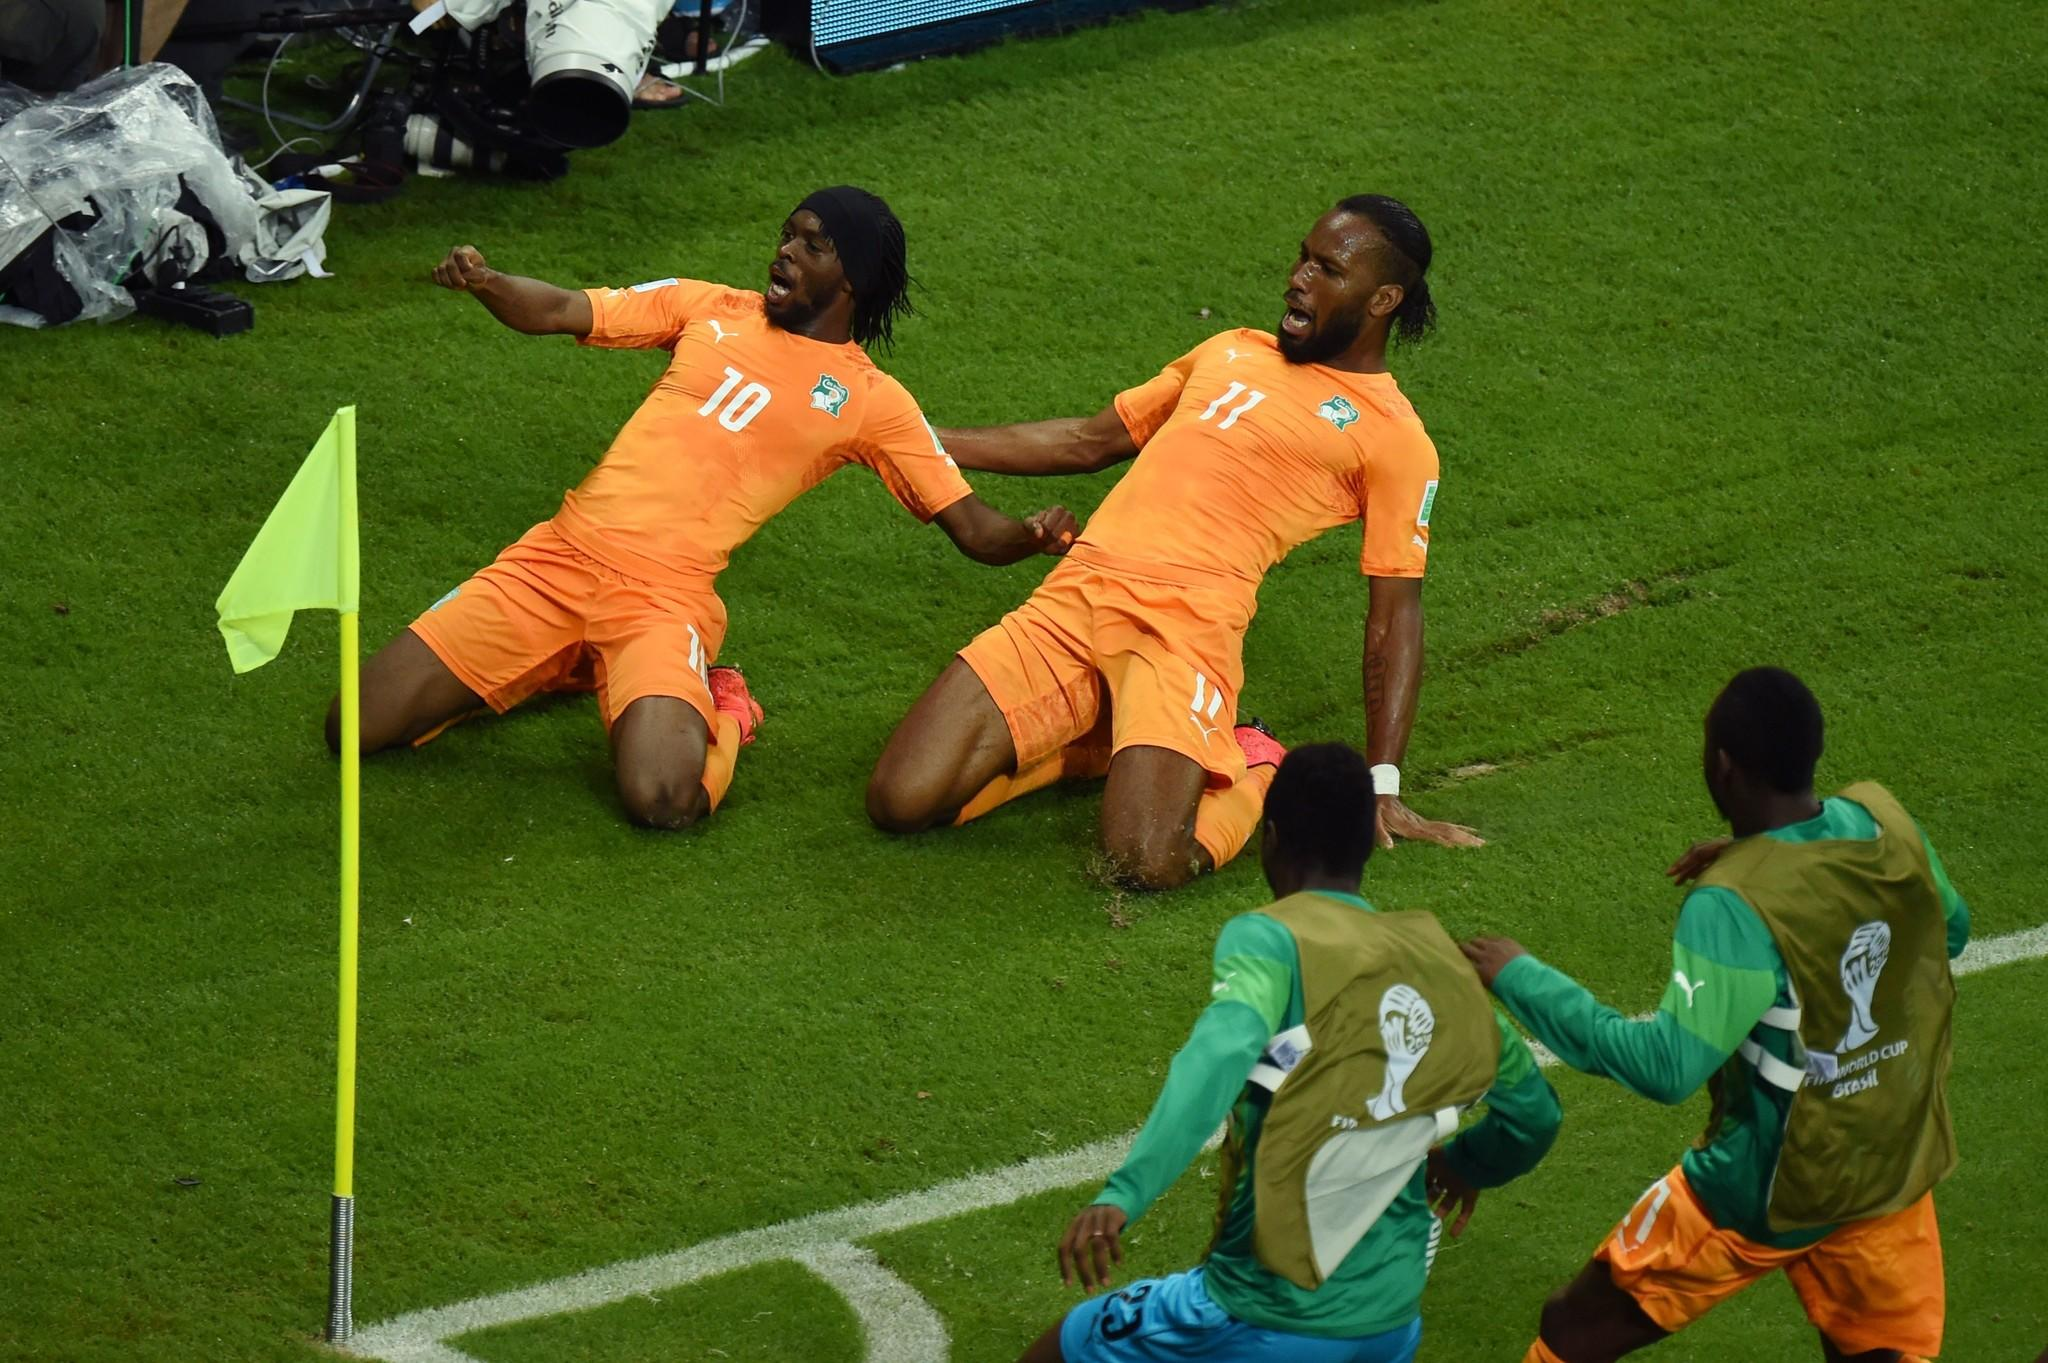 Gervinho of the Ivory Coast (L) celebrates scoring his team's second goal with teammate Didier Drogba.